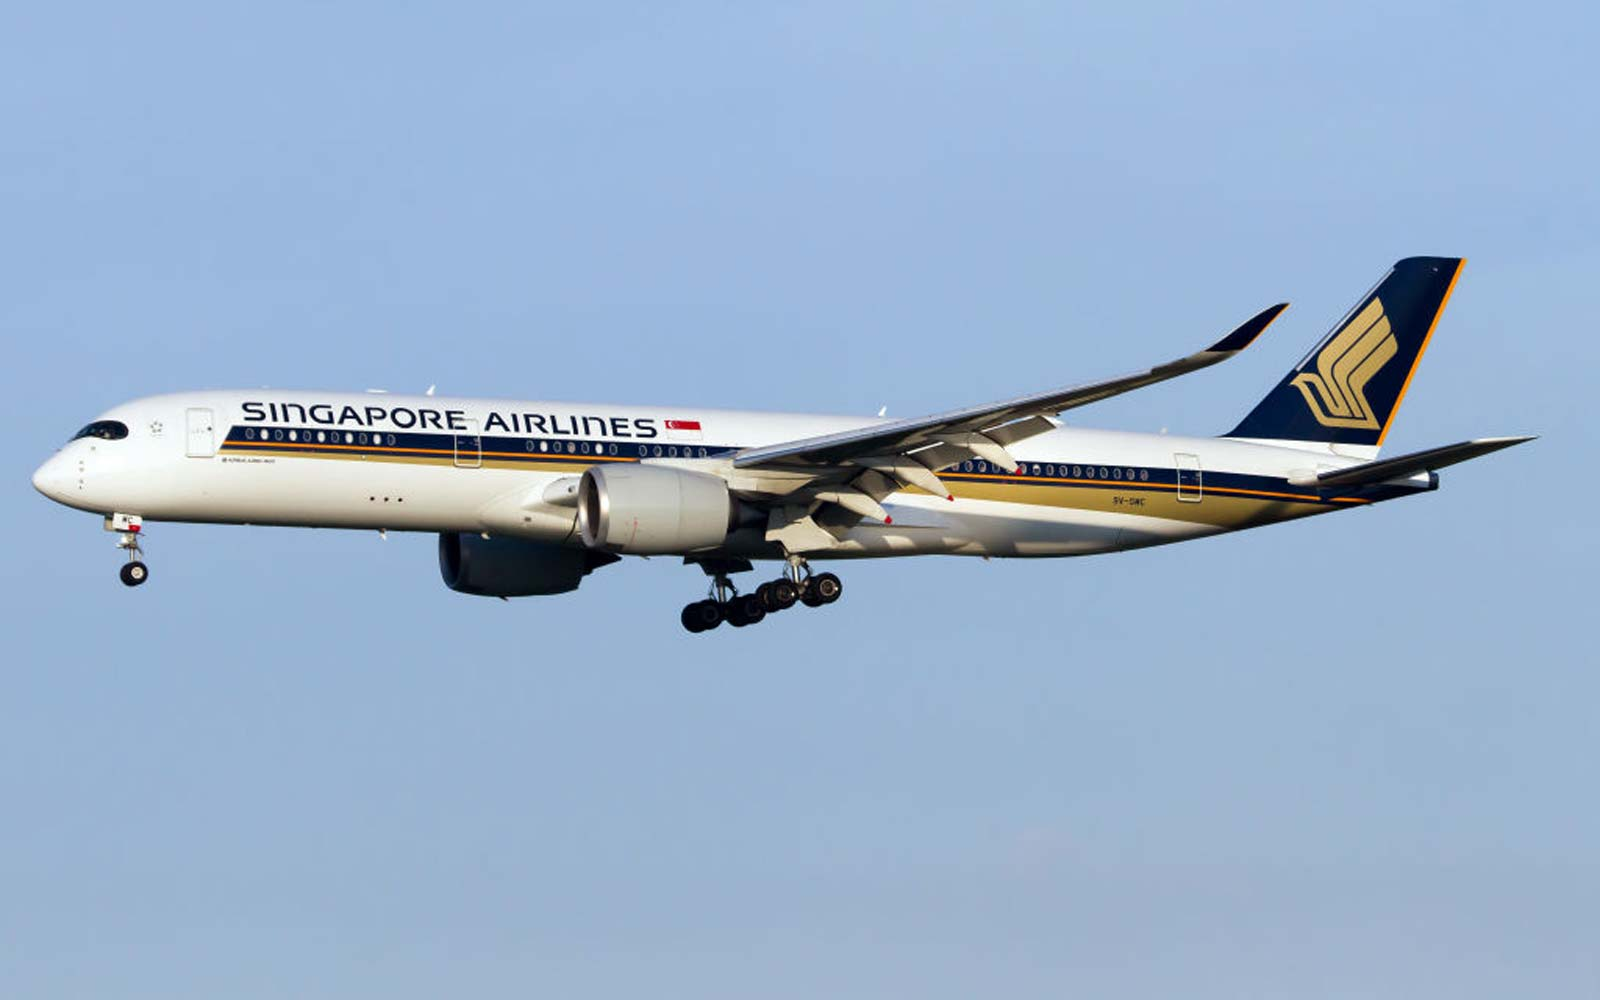 A Bird Flew Business Class From Singapore to London — and No One Noticed for 12 Hours